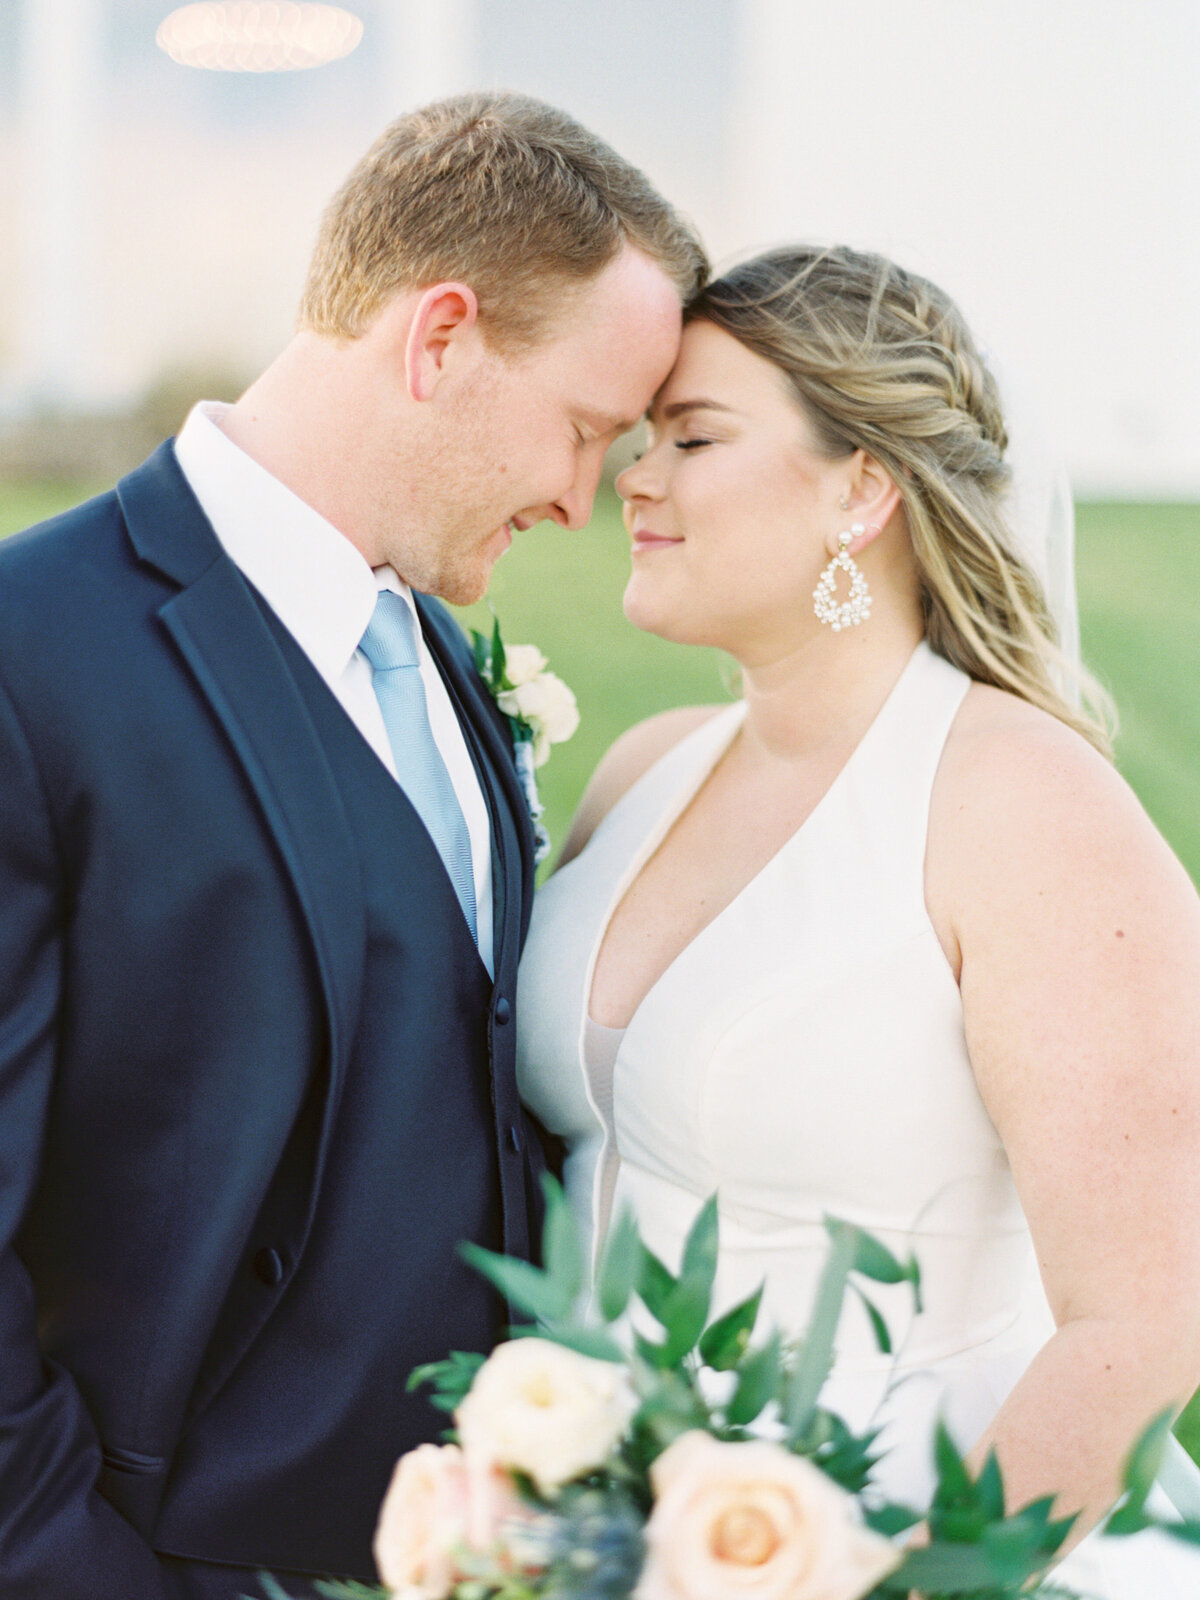 the-farmhouse-wedding-houston-texas-wedding-photographer-mackenzie-reiter-photography-81